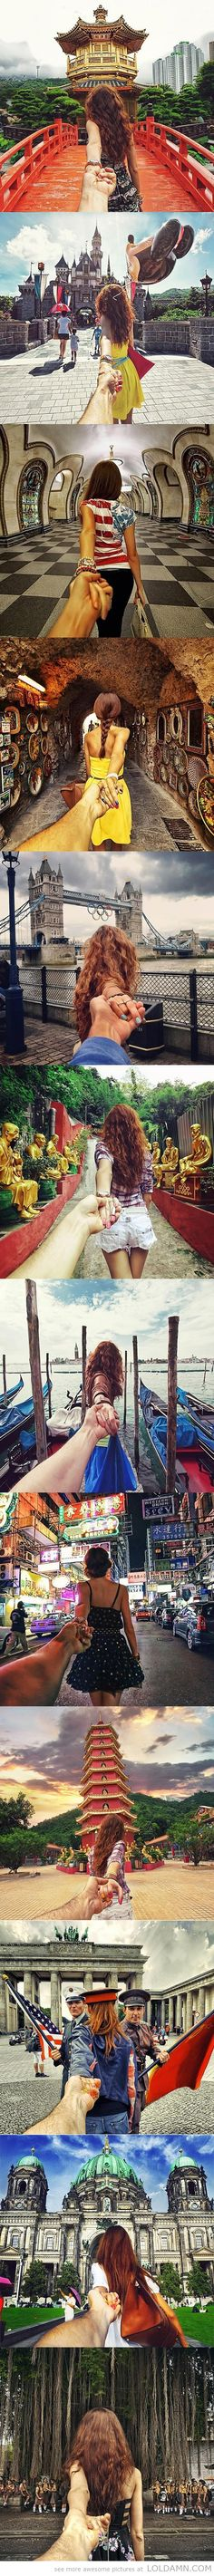 Photographers girlfriend leads him around the world. Love this!!